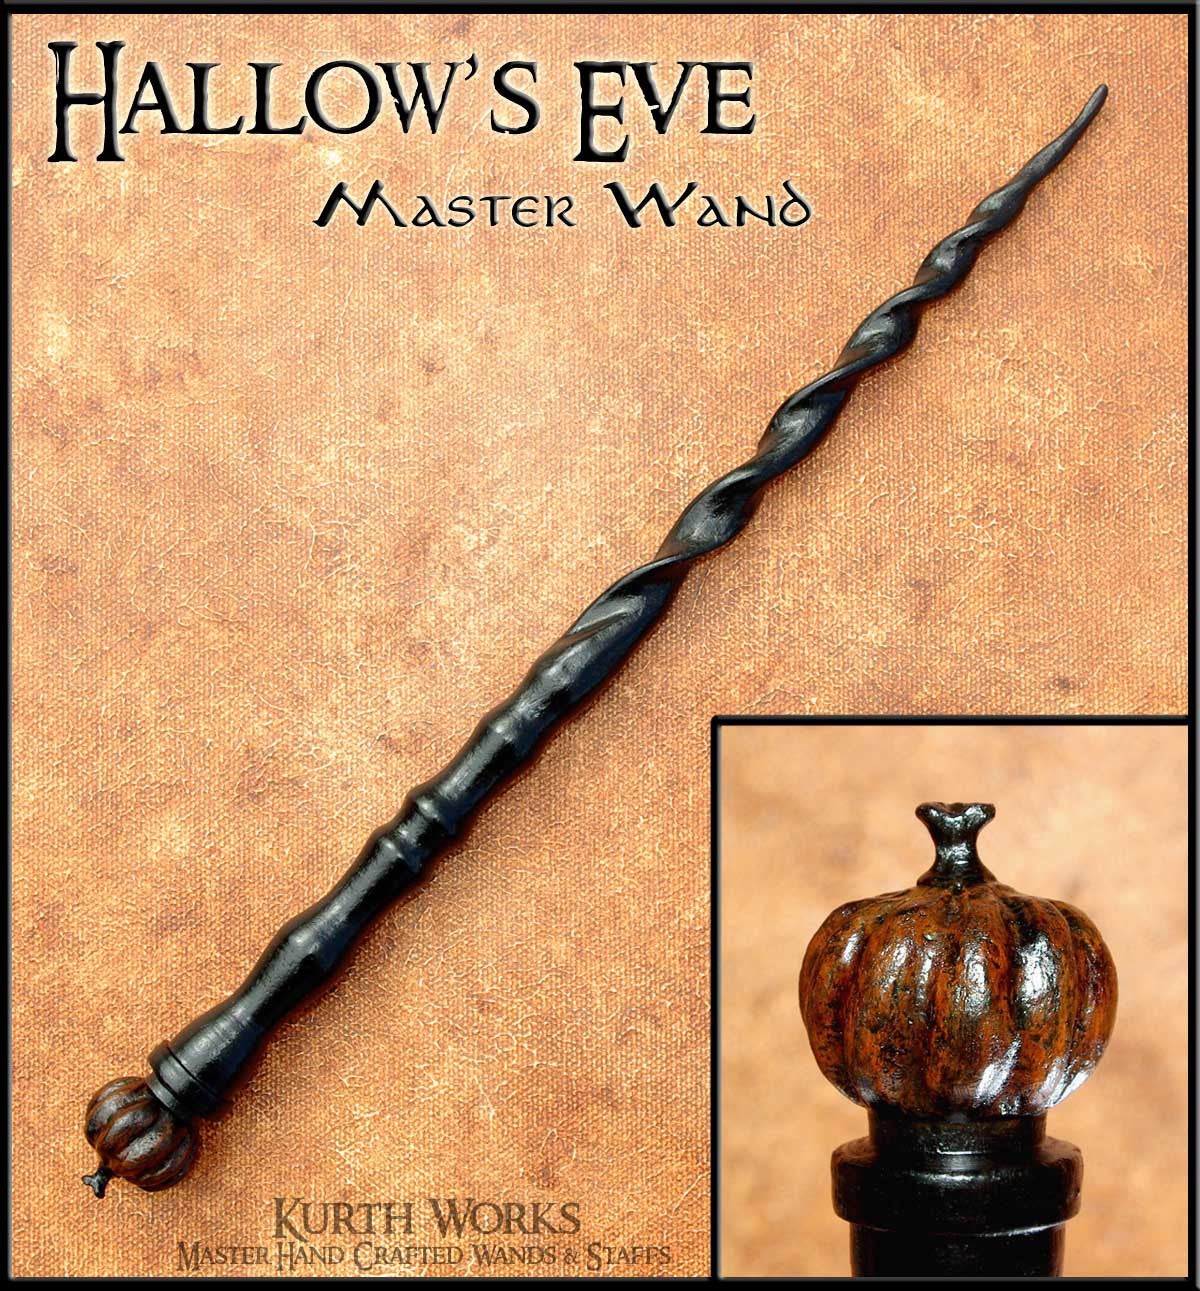 Hallows Eve Spiraled Wizard Magic Wand